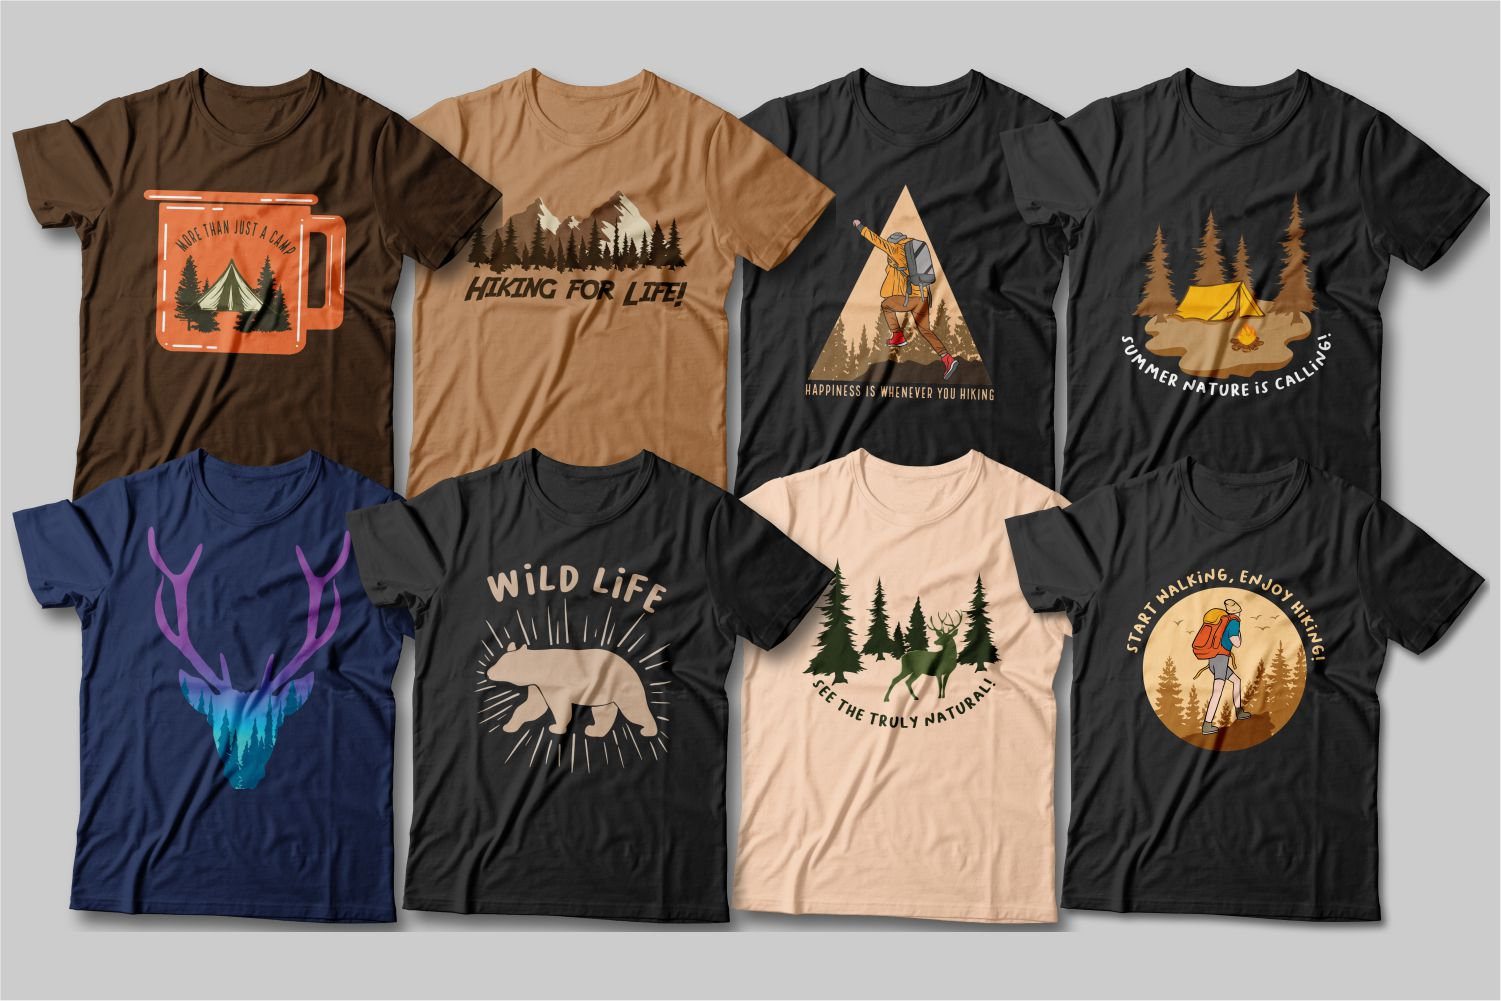 Better than mountains can only be mountains. These T-shirts are about the unconditional love of nature and hiking.